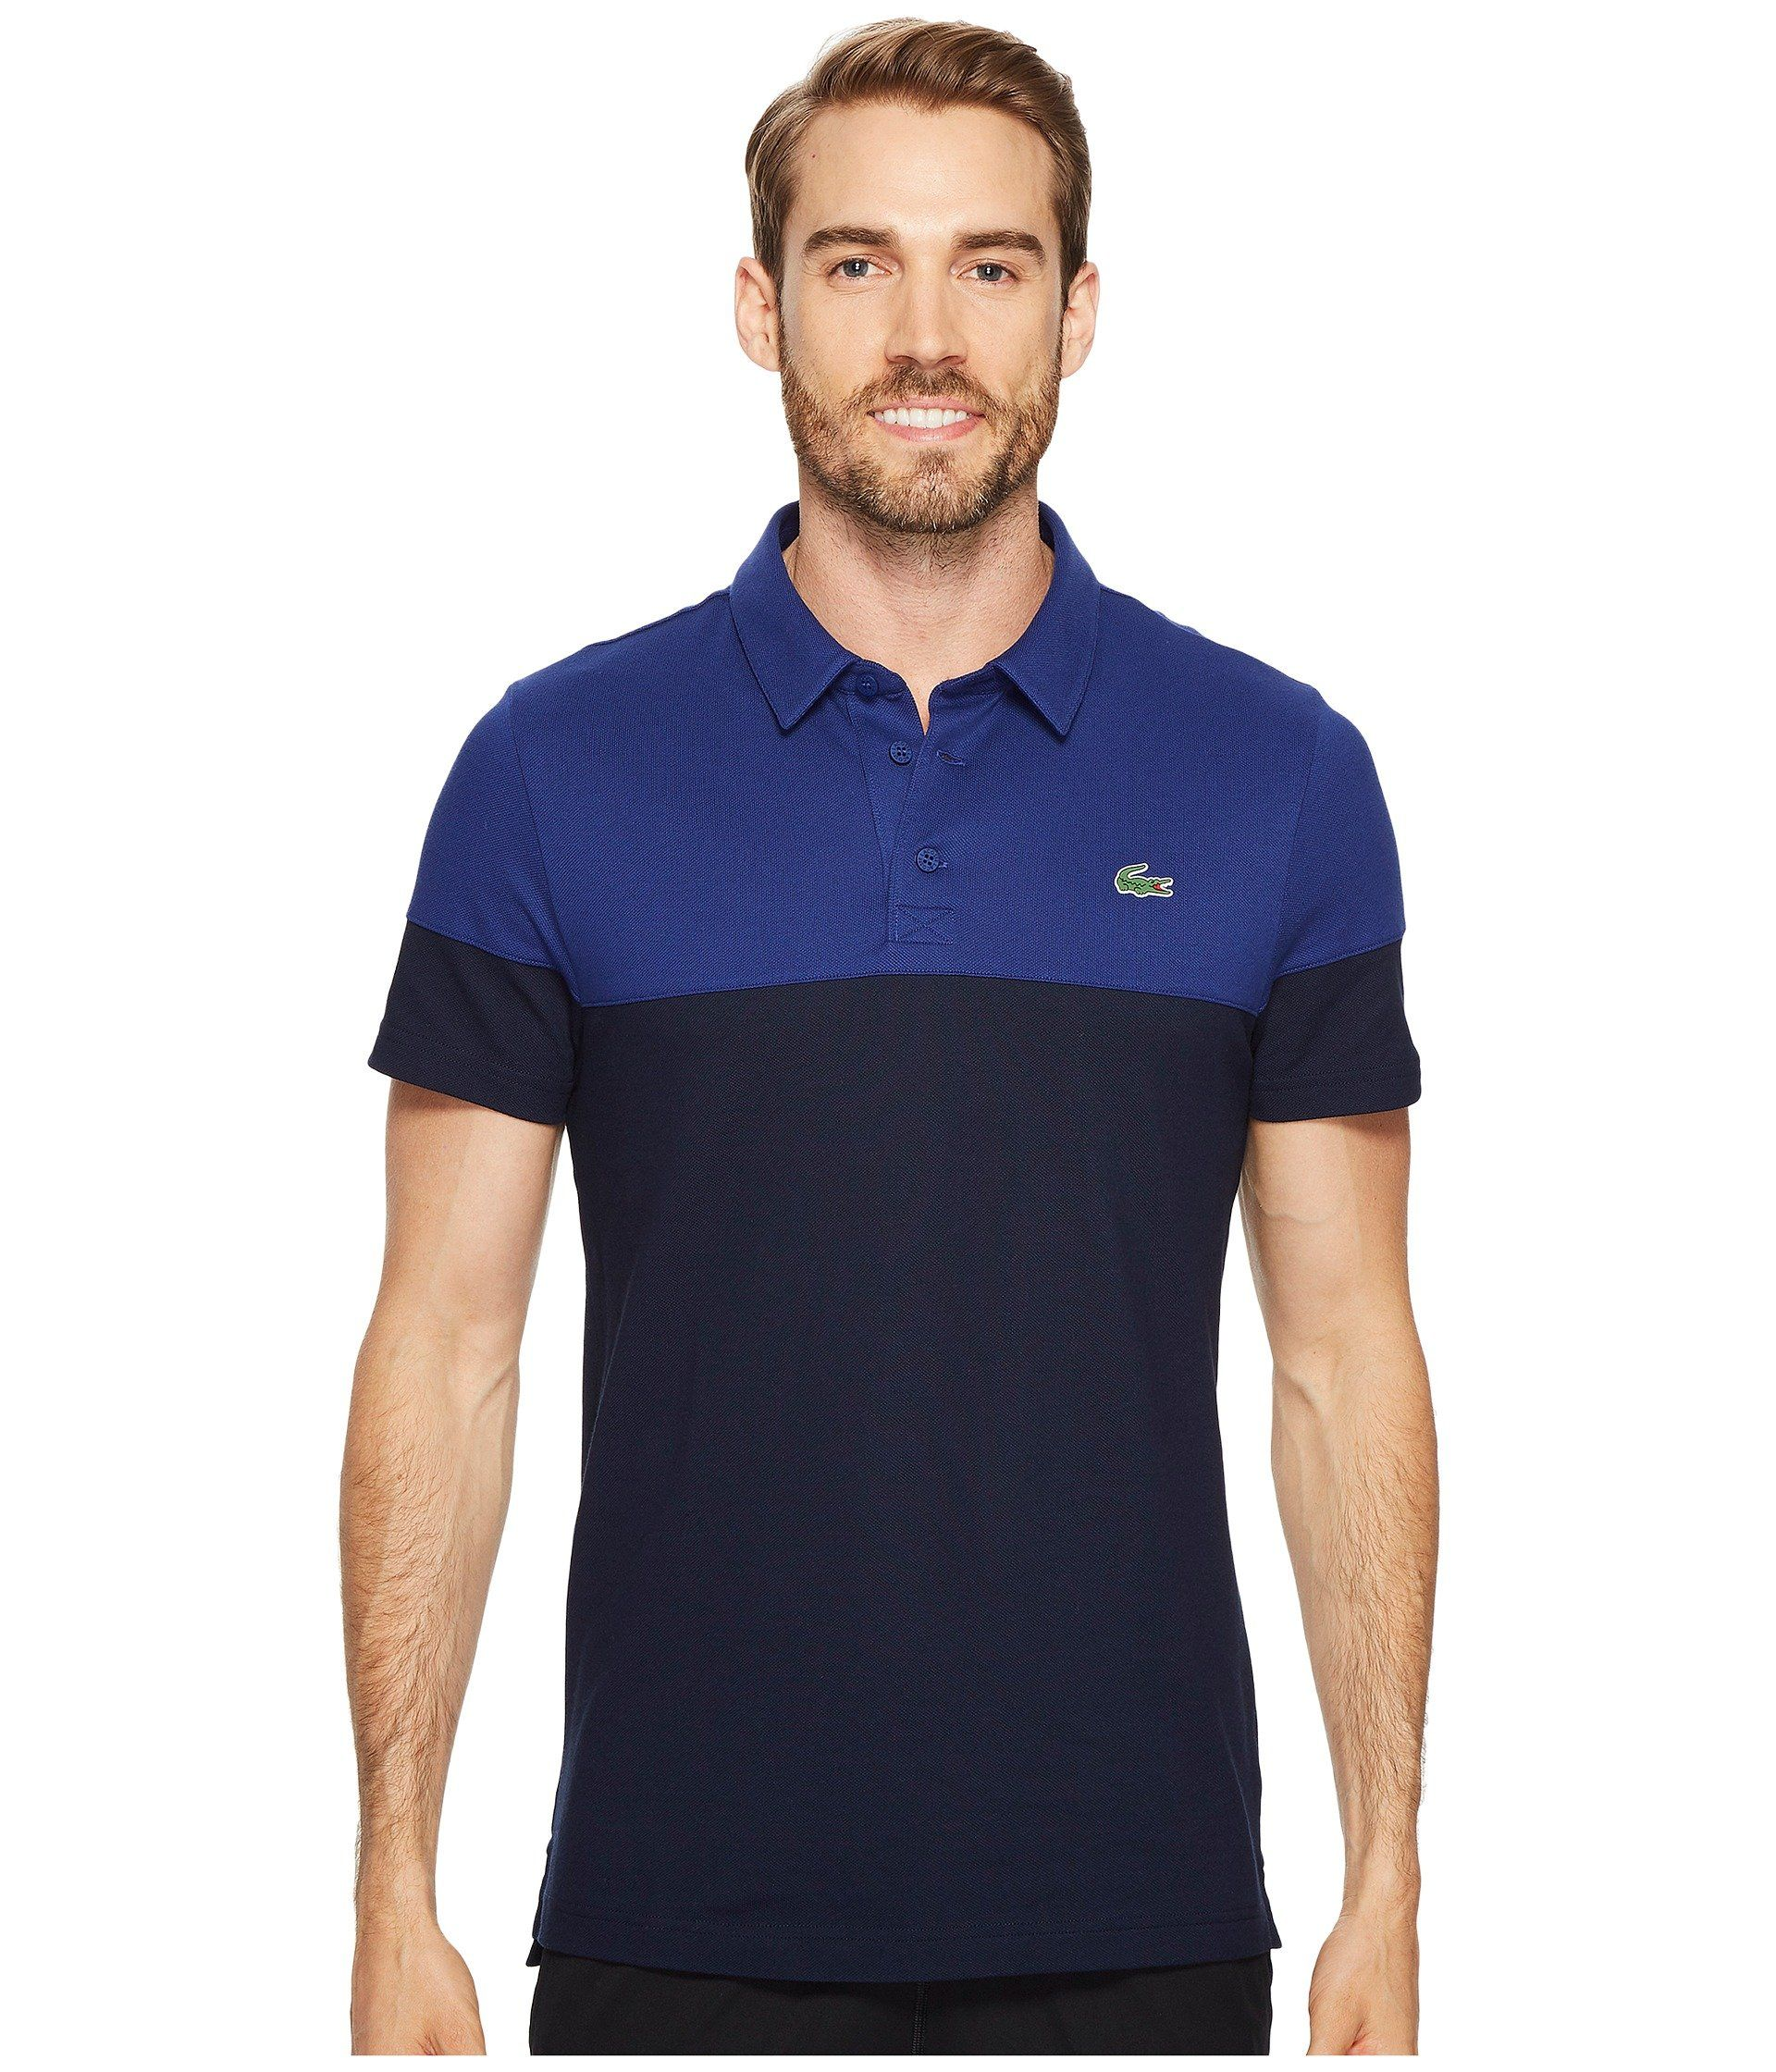 dce000b35543e Lacoste T Shirt Buy Online India